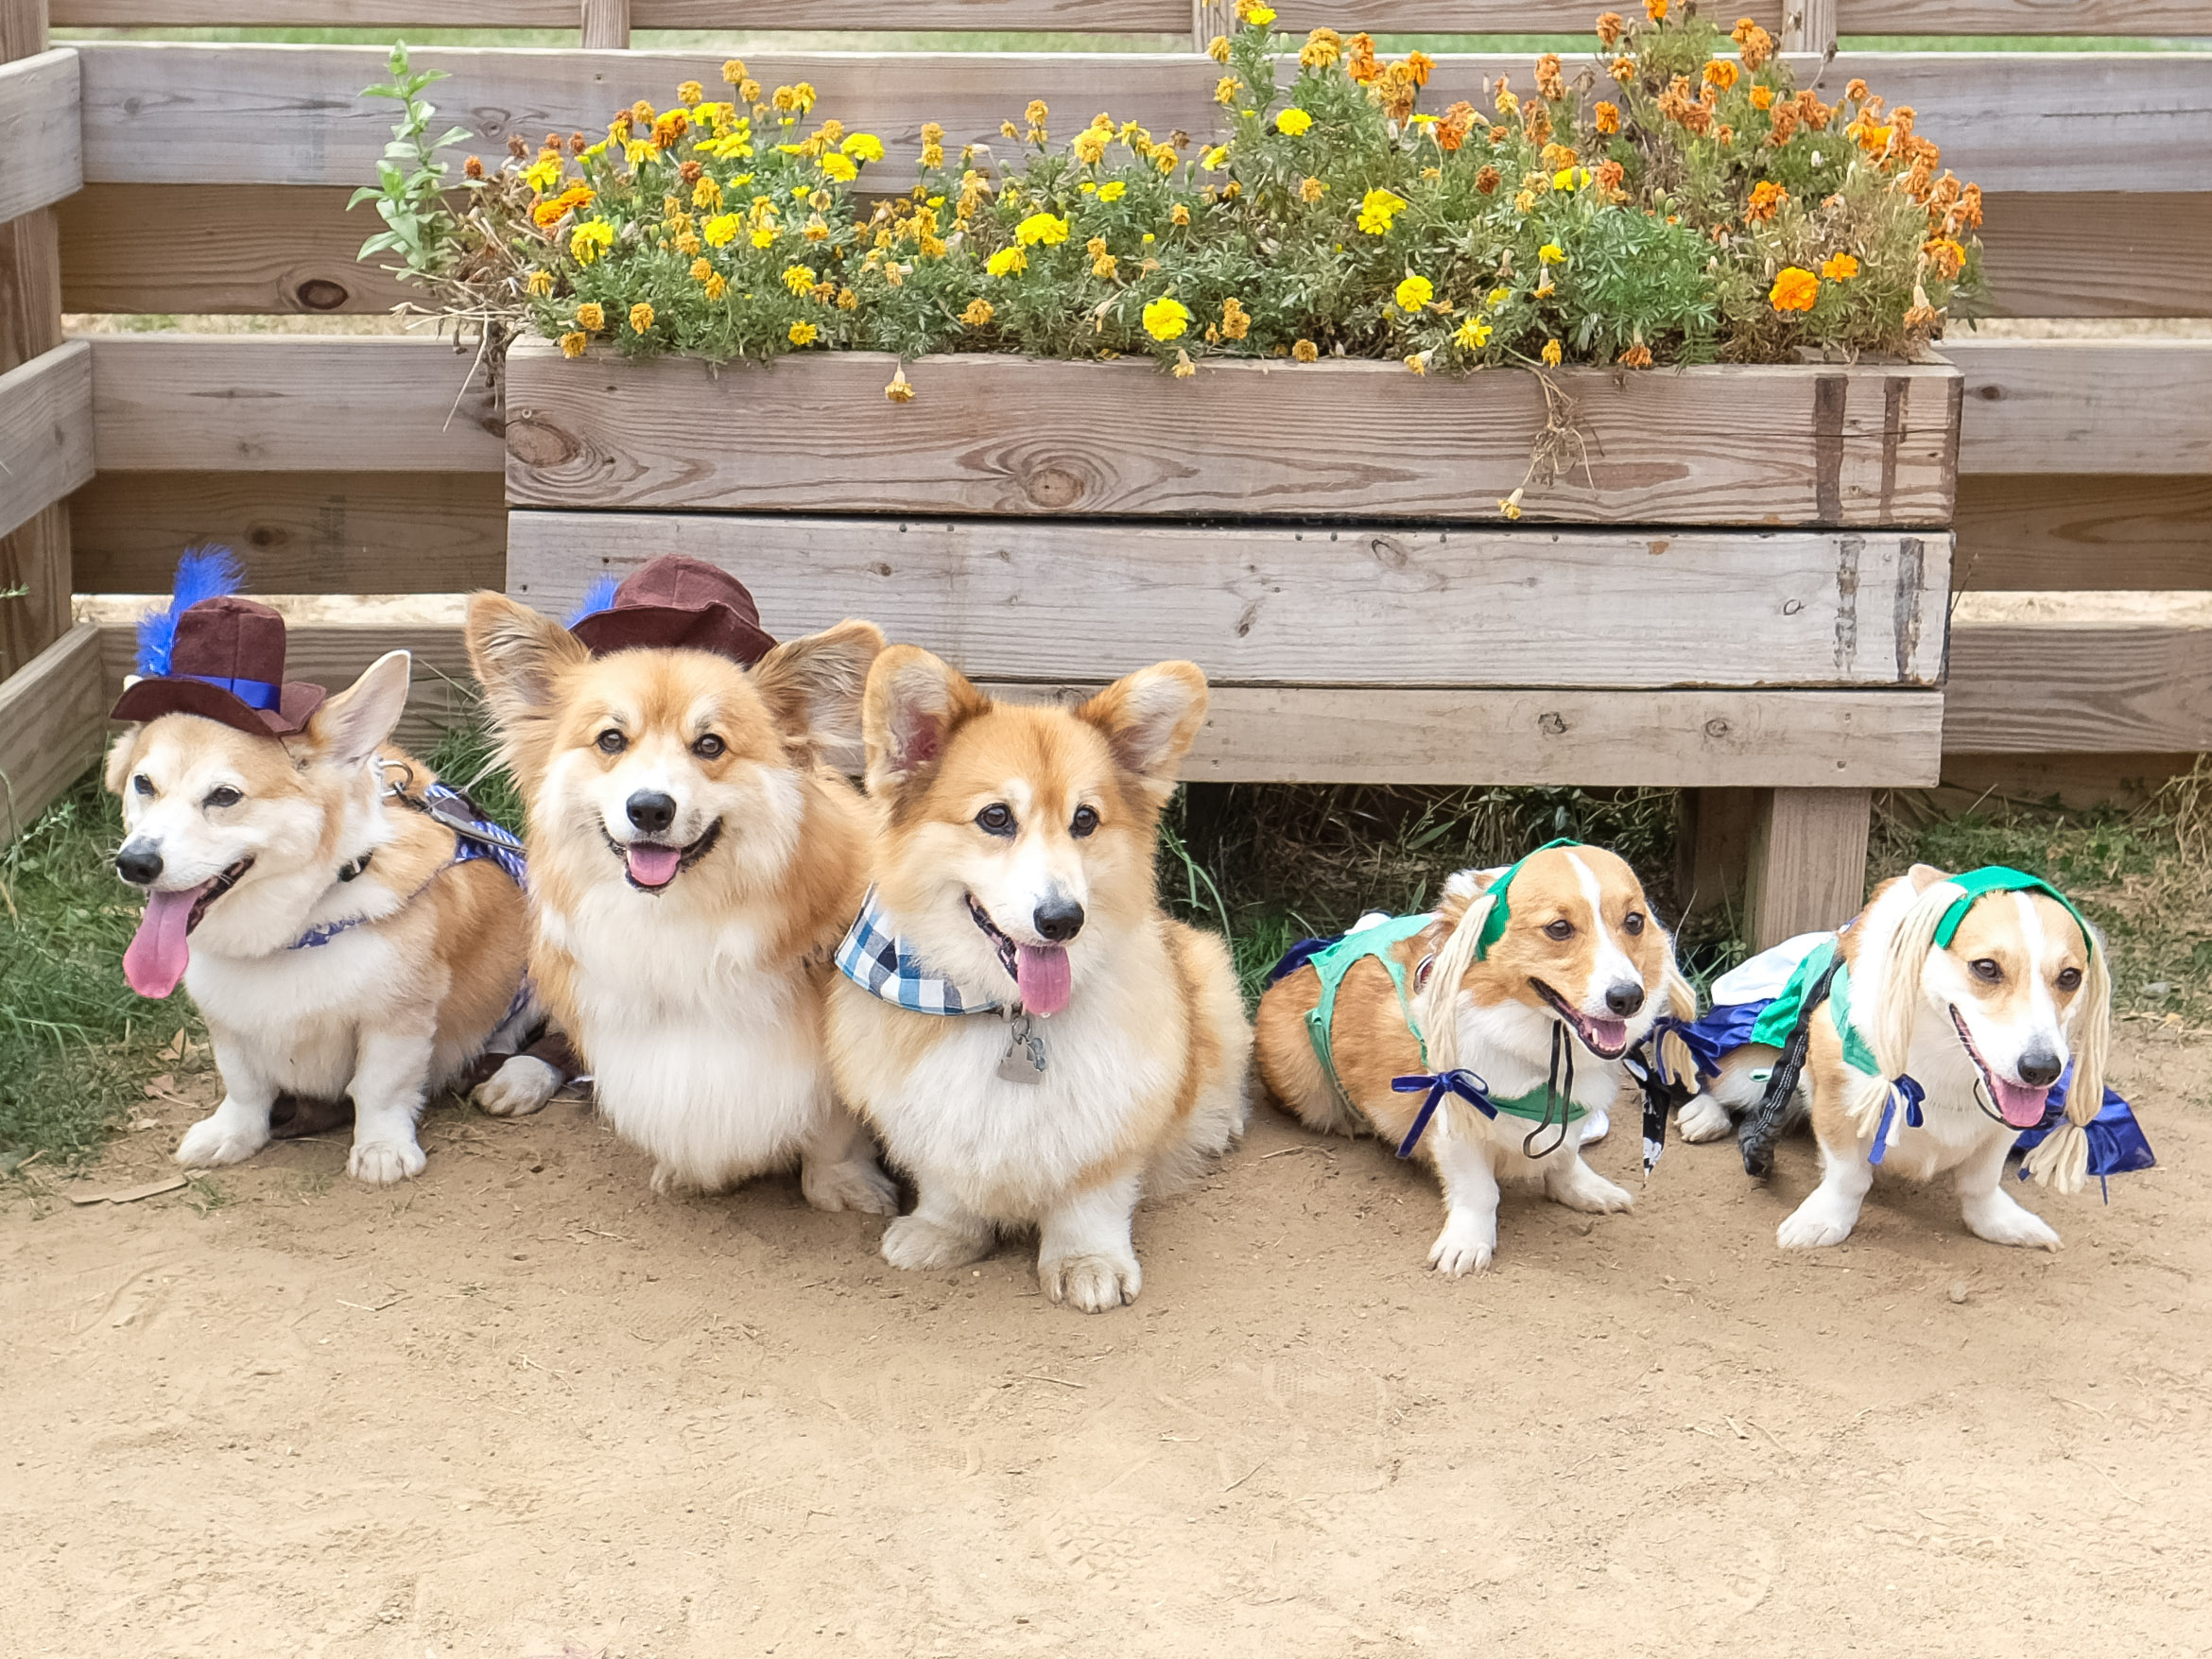 "There are few things in life we love more than a bunch of dogs all in one place that we can go nutty over! So naturally, Derpin' in DC: Corgtoberfest was right up our alley! Hundreds of stumpy-legged fluff monsters and their humans descended on Tysons Biergarten for the fourth annual Corgi meetup, though it was an all-inclusive event with many other breeds making an appearance as well. There was a costume contest for the dogs and stein-drinking competitions for their two-legged counterparts, followed by several heats of corgi races. Boy can those stumpy little furballs run! You may see some familiar faces as several ""insta stars"" were present, including Navy, Moogle, Waffles, Jasper and Biscuit. Plus, our friends from We The Dogs DC were repping! (Image: Courtesy IG user @wallythewelshcorgi)"